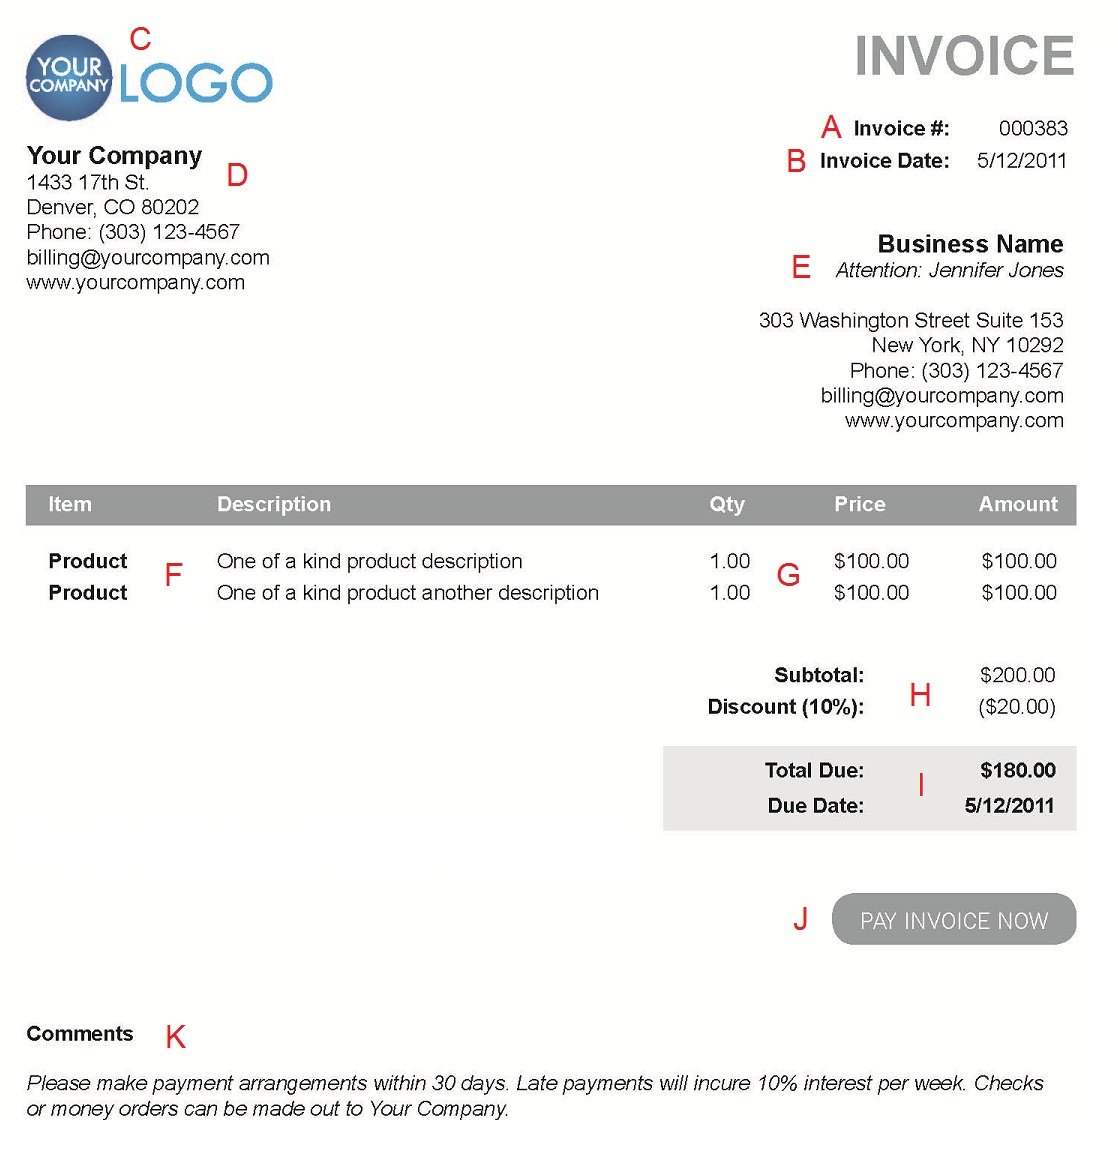 Soulfulpowerus  Picturesque The  Different Sections Of An Electronic Payment Invoice With Exquisite A  With Attractive Invoice Trading Also Make Your Own Invoice Template In Addition Invoice Blank Template And Auto Dealer Invoice Price As Well As Free Sample Of Invoice Additionally Specimen Of Invoice From Paysimplecom With Soulfulpowerus  Exquisite The  Different Sections Of An Electronic Payment Invoice With Attractive A  And Picturesque Invoice Trading Also Make Your Own Invoice Template In Addition Invoice Blank Template From Paysimplecom